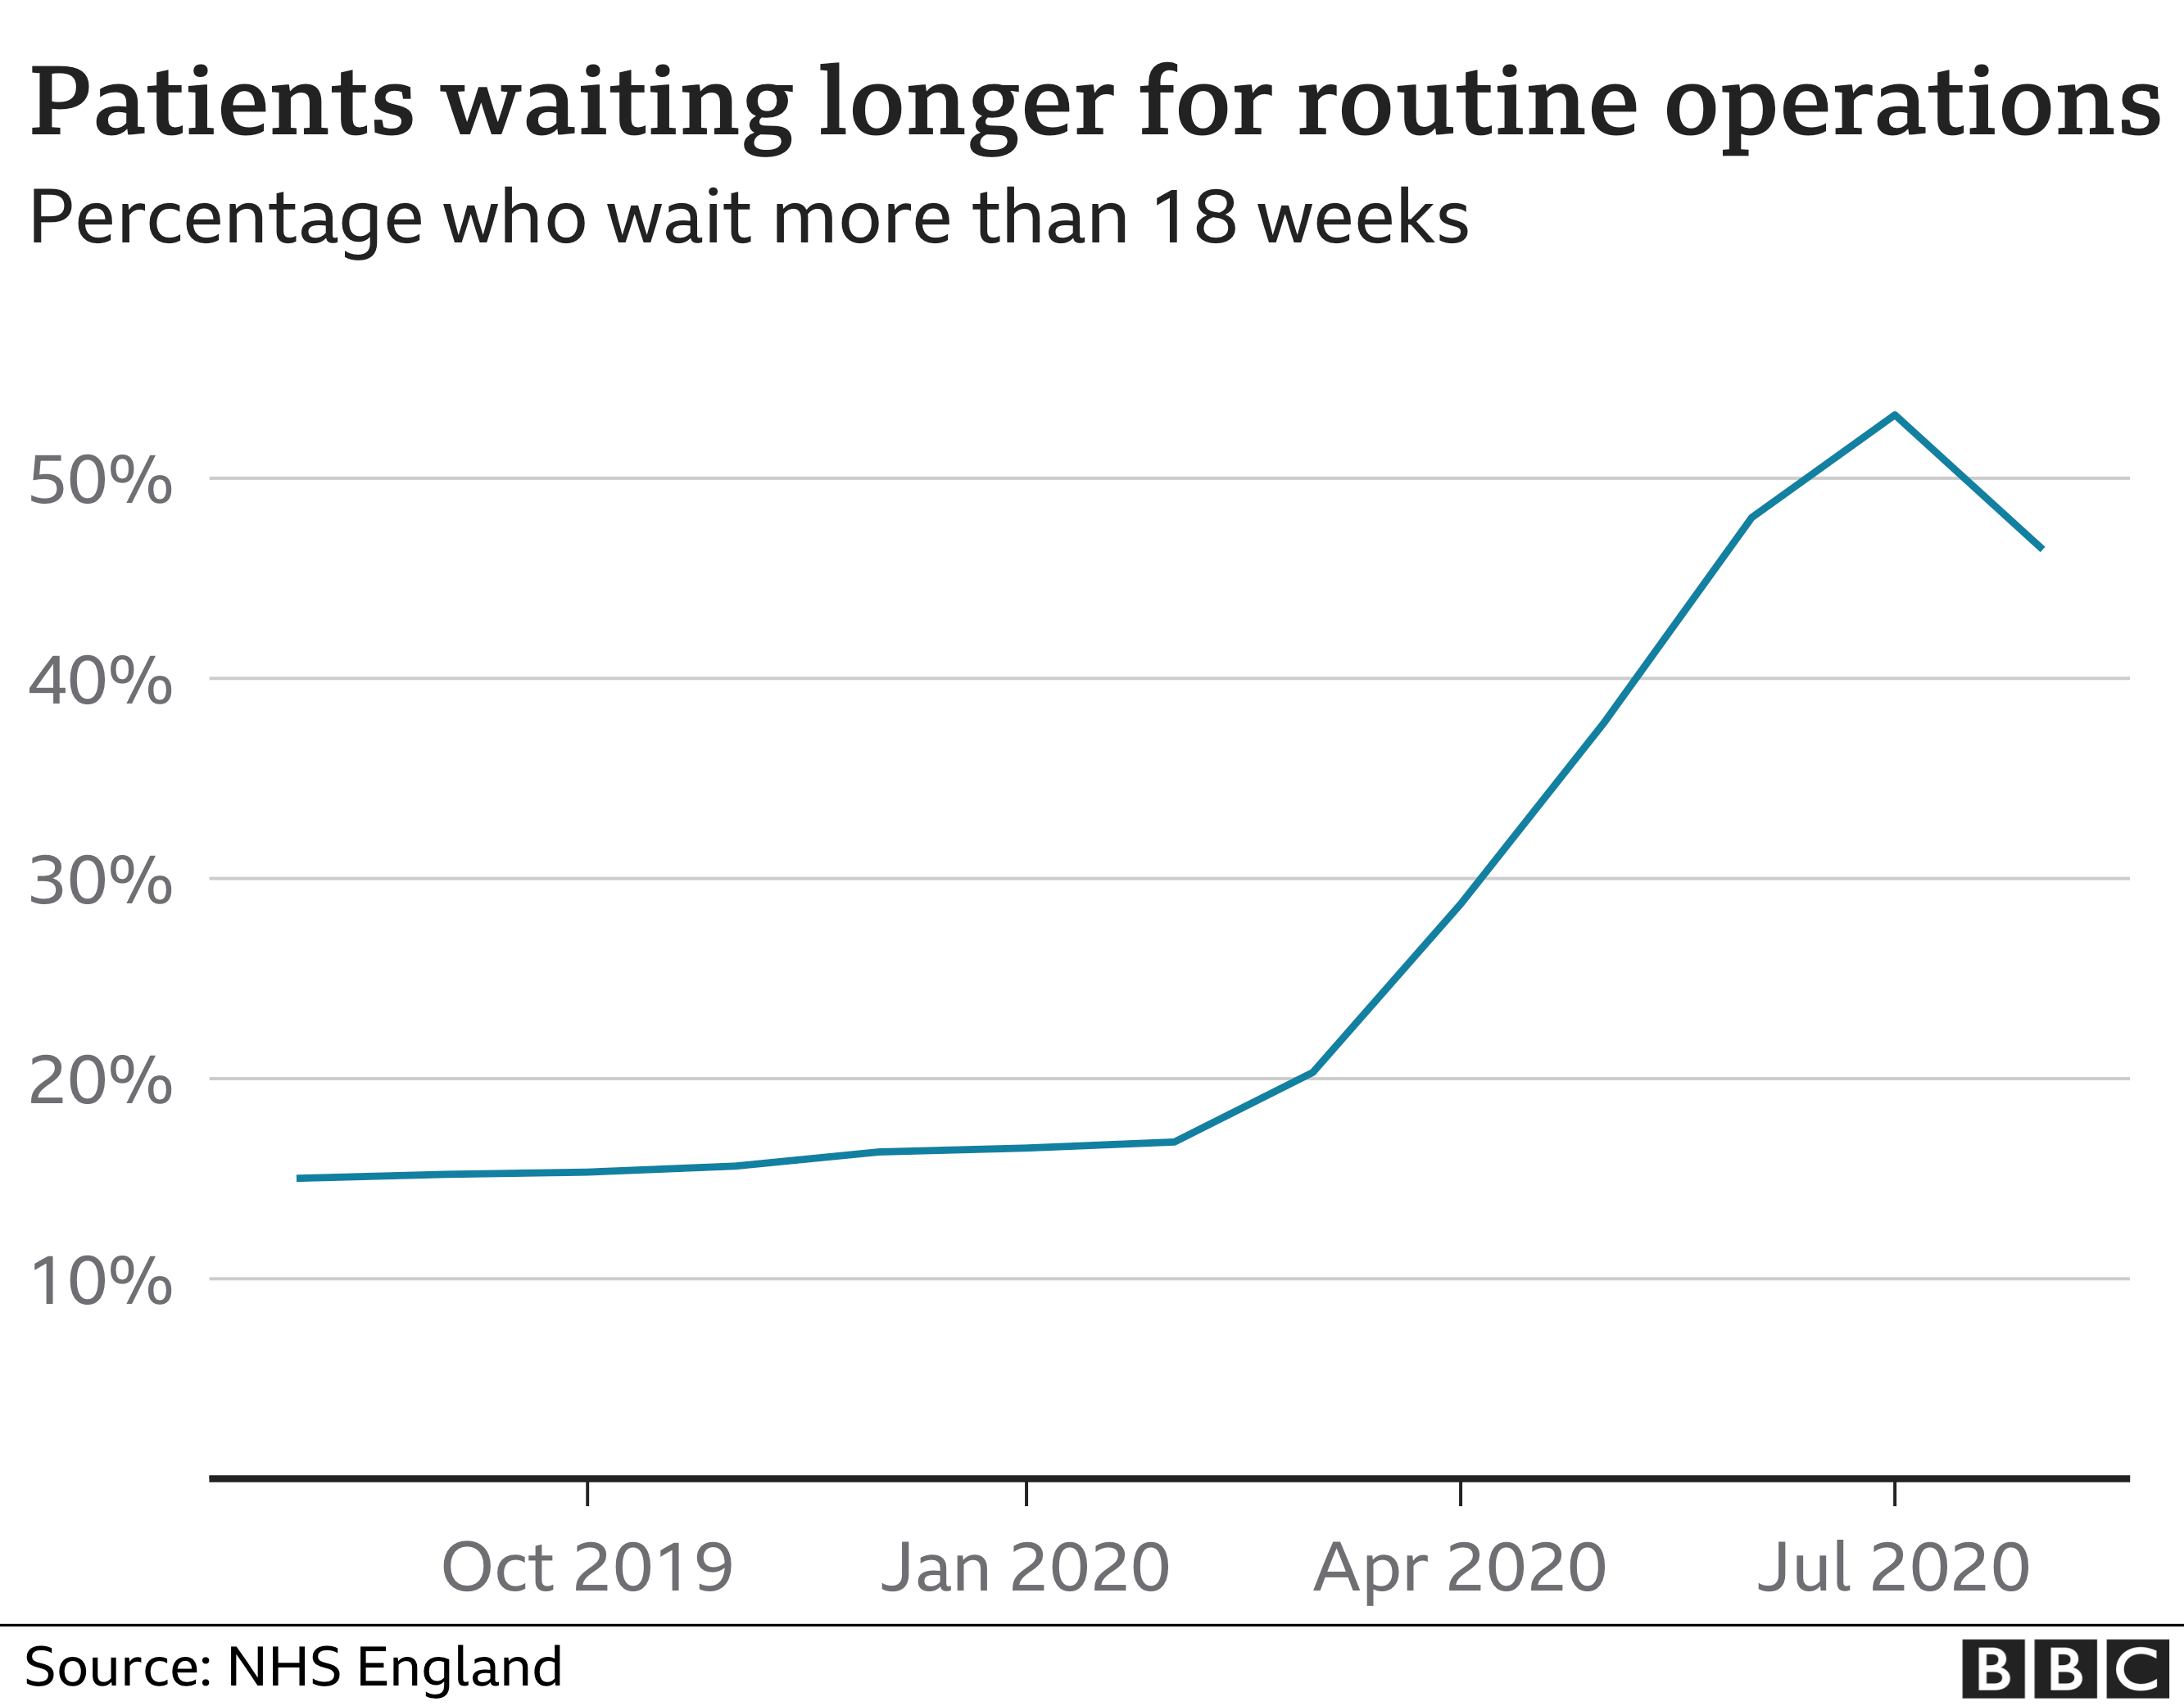 Patients waiting longer for operations